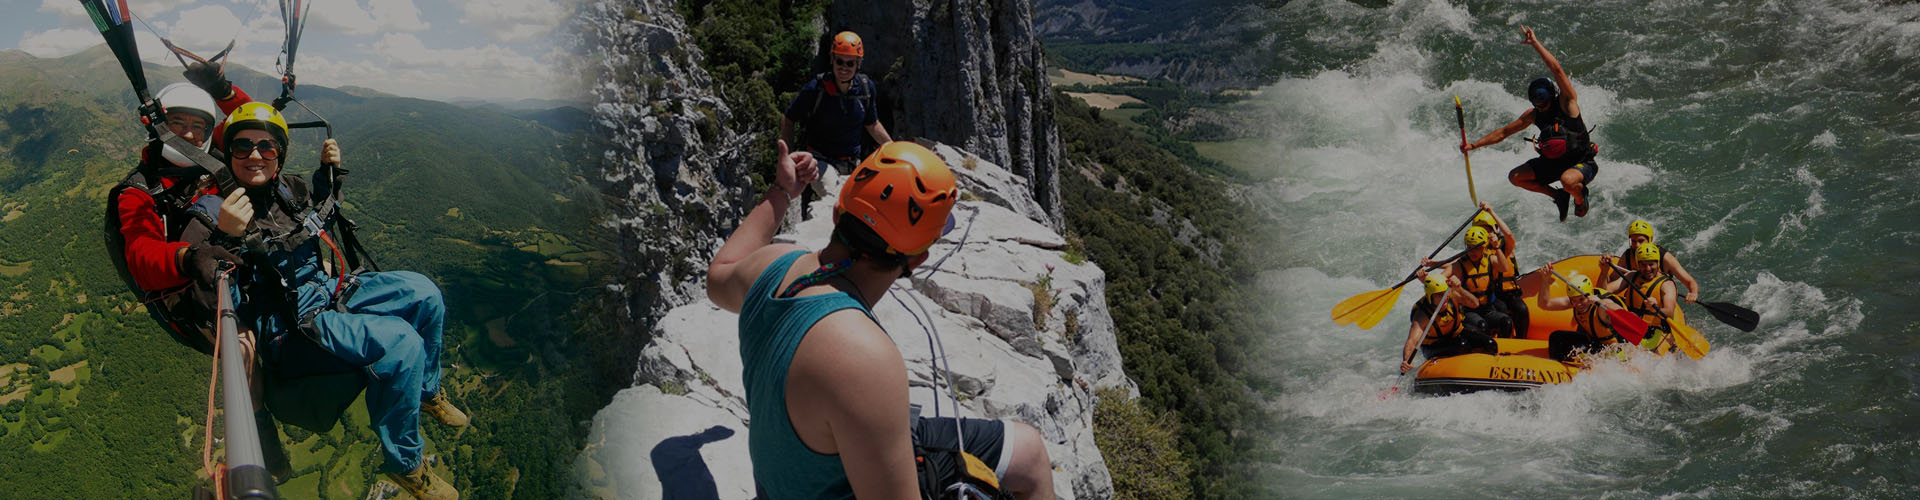 Packs Multi aventura en el Pirineo de Huesca